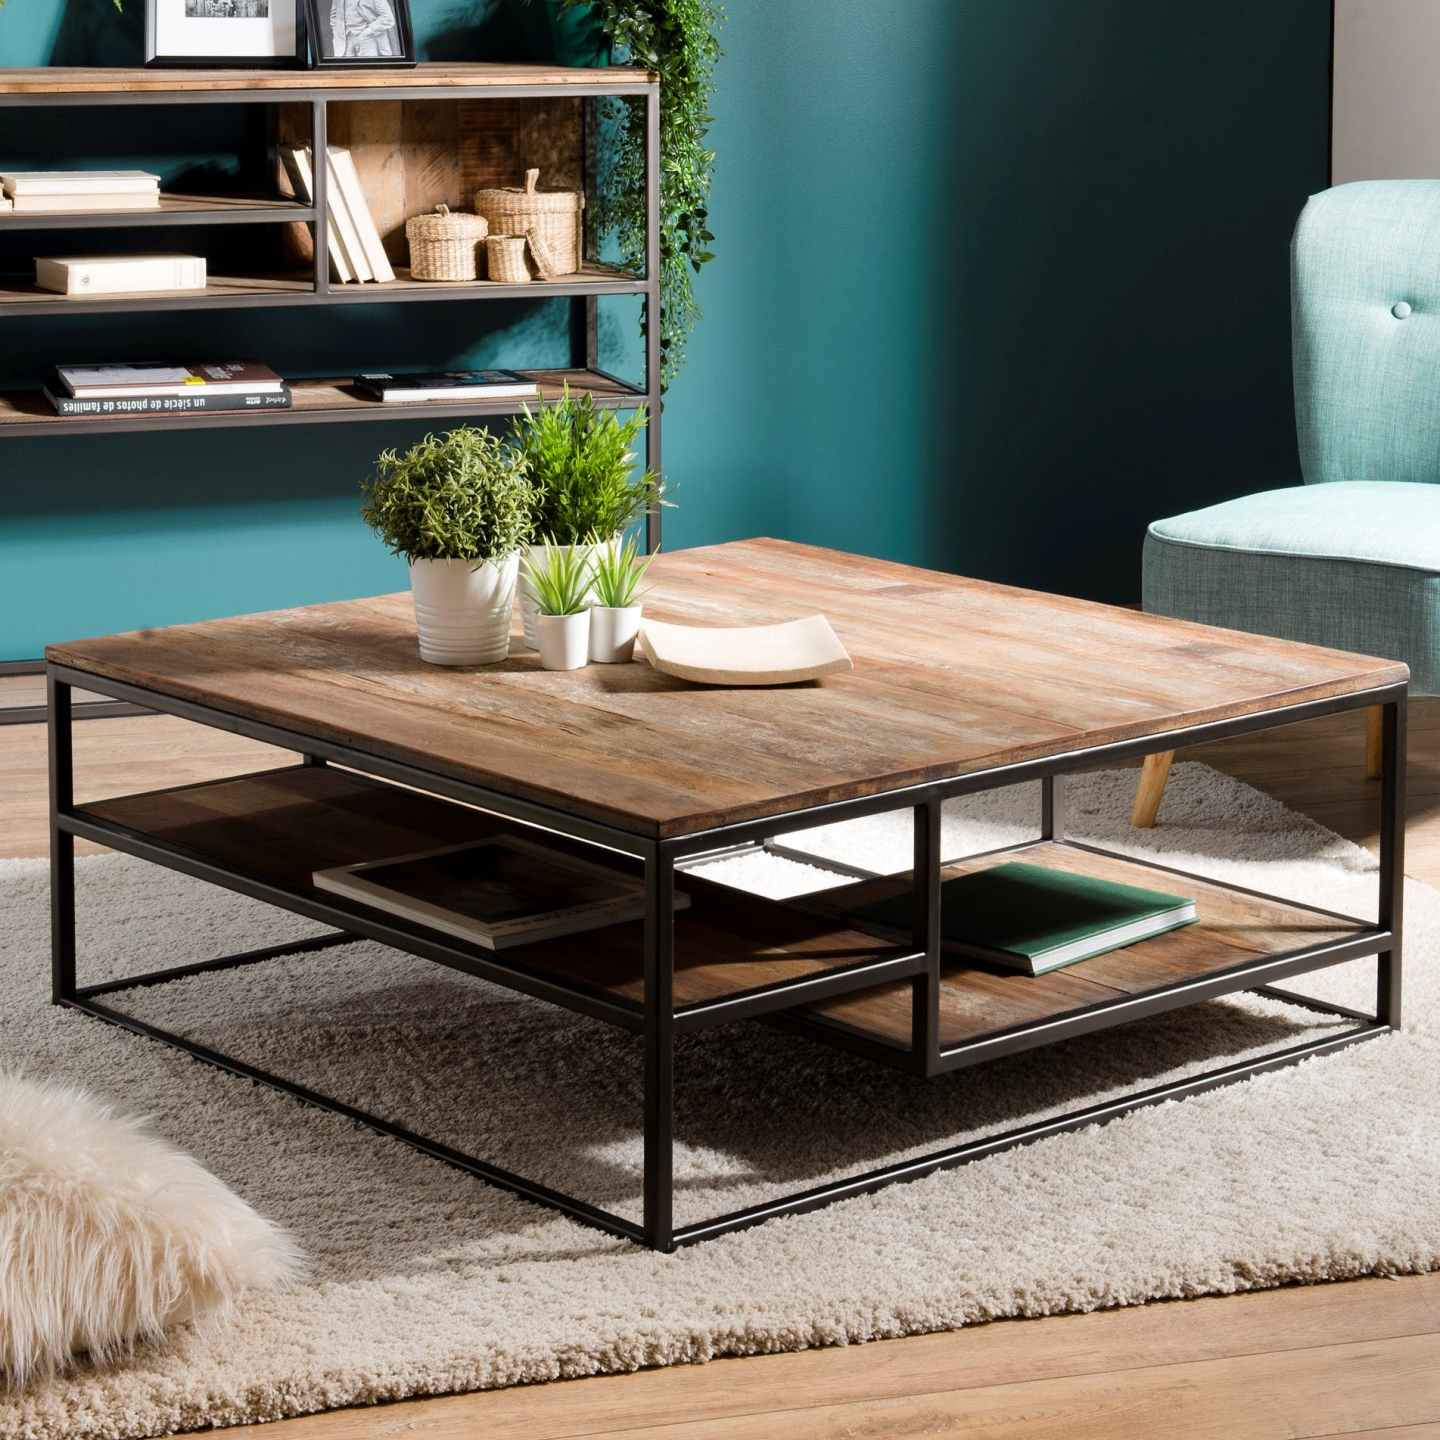 PIERIMPORT – TABLE BASSE TECK RECYCLE